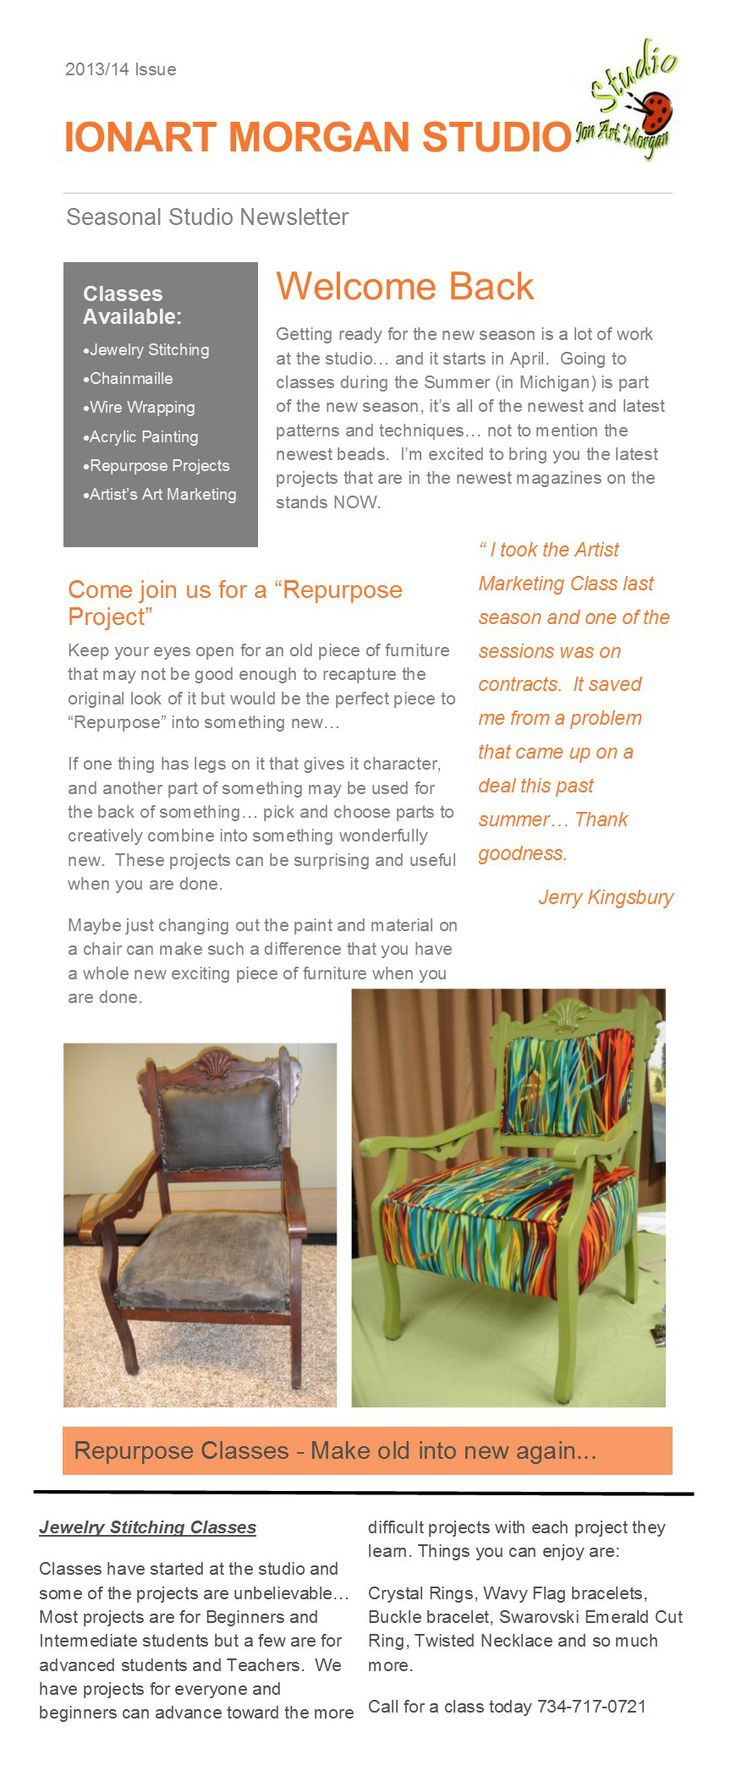 Repurpose projects